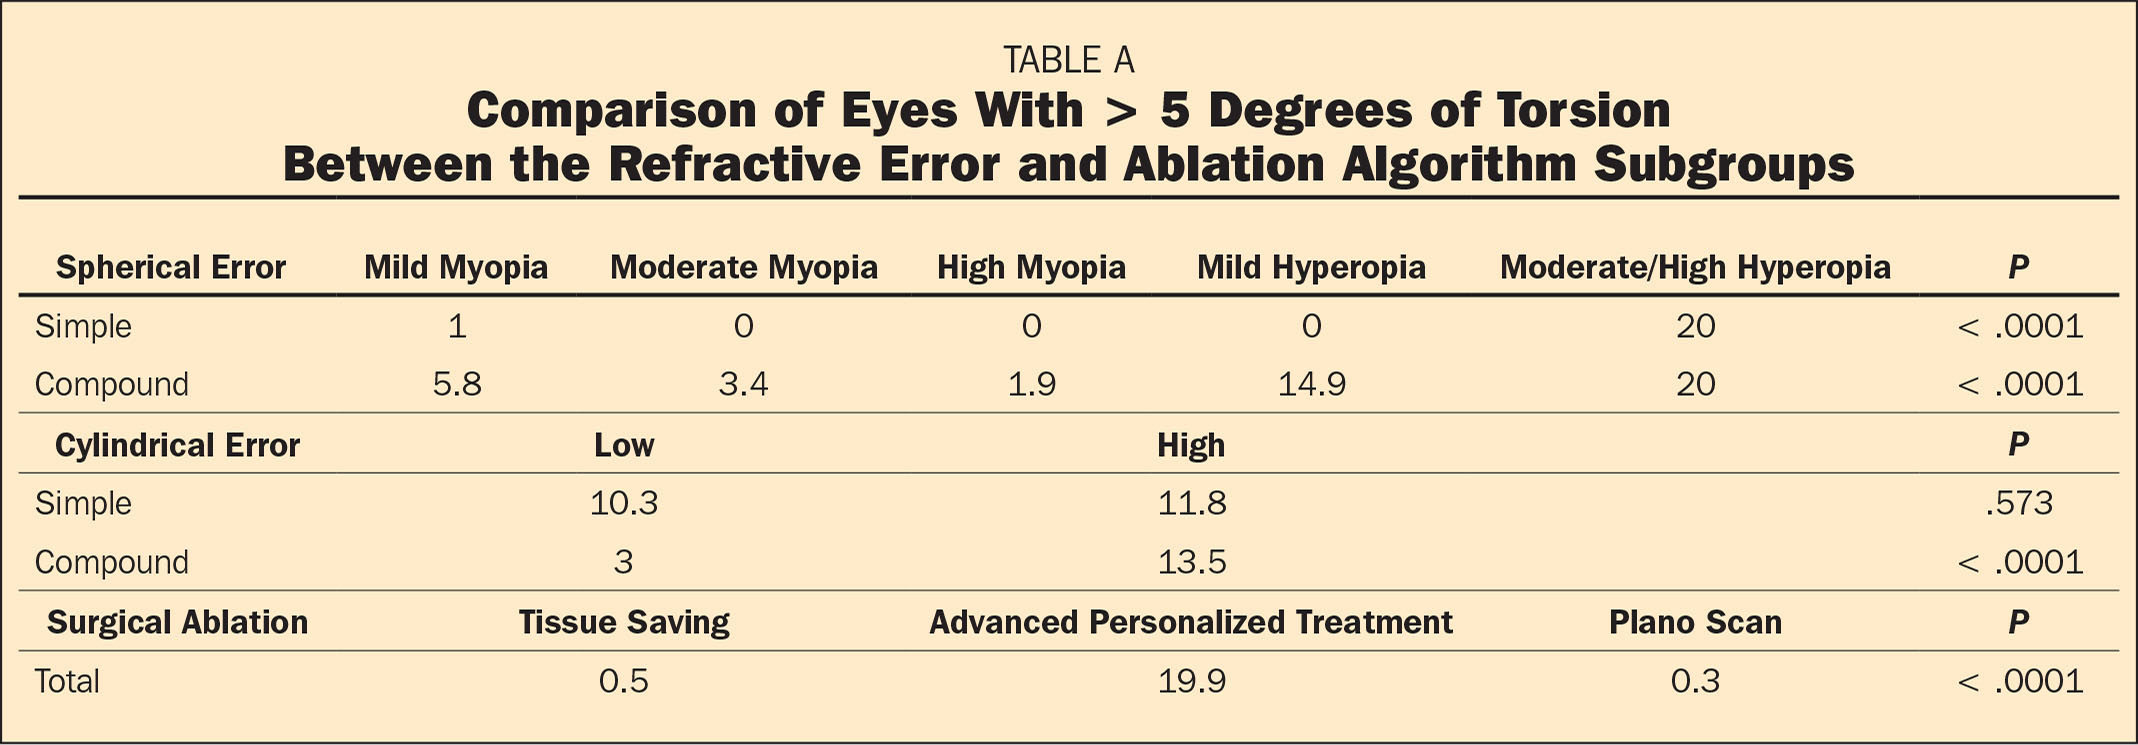 Comparison of Eyes With > 5 Degrees of Torsion Between the Refractive Error and Ablation Algorithm Subgroups